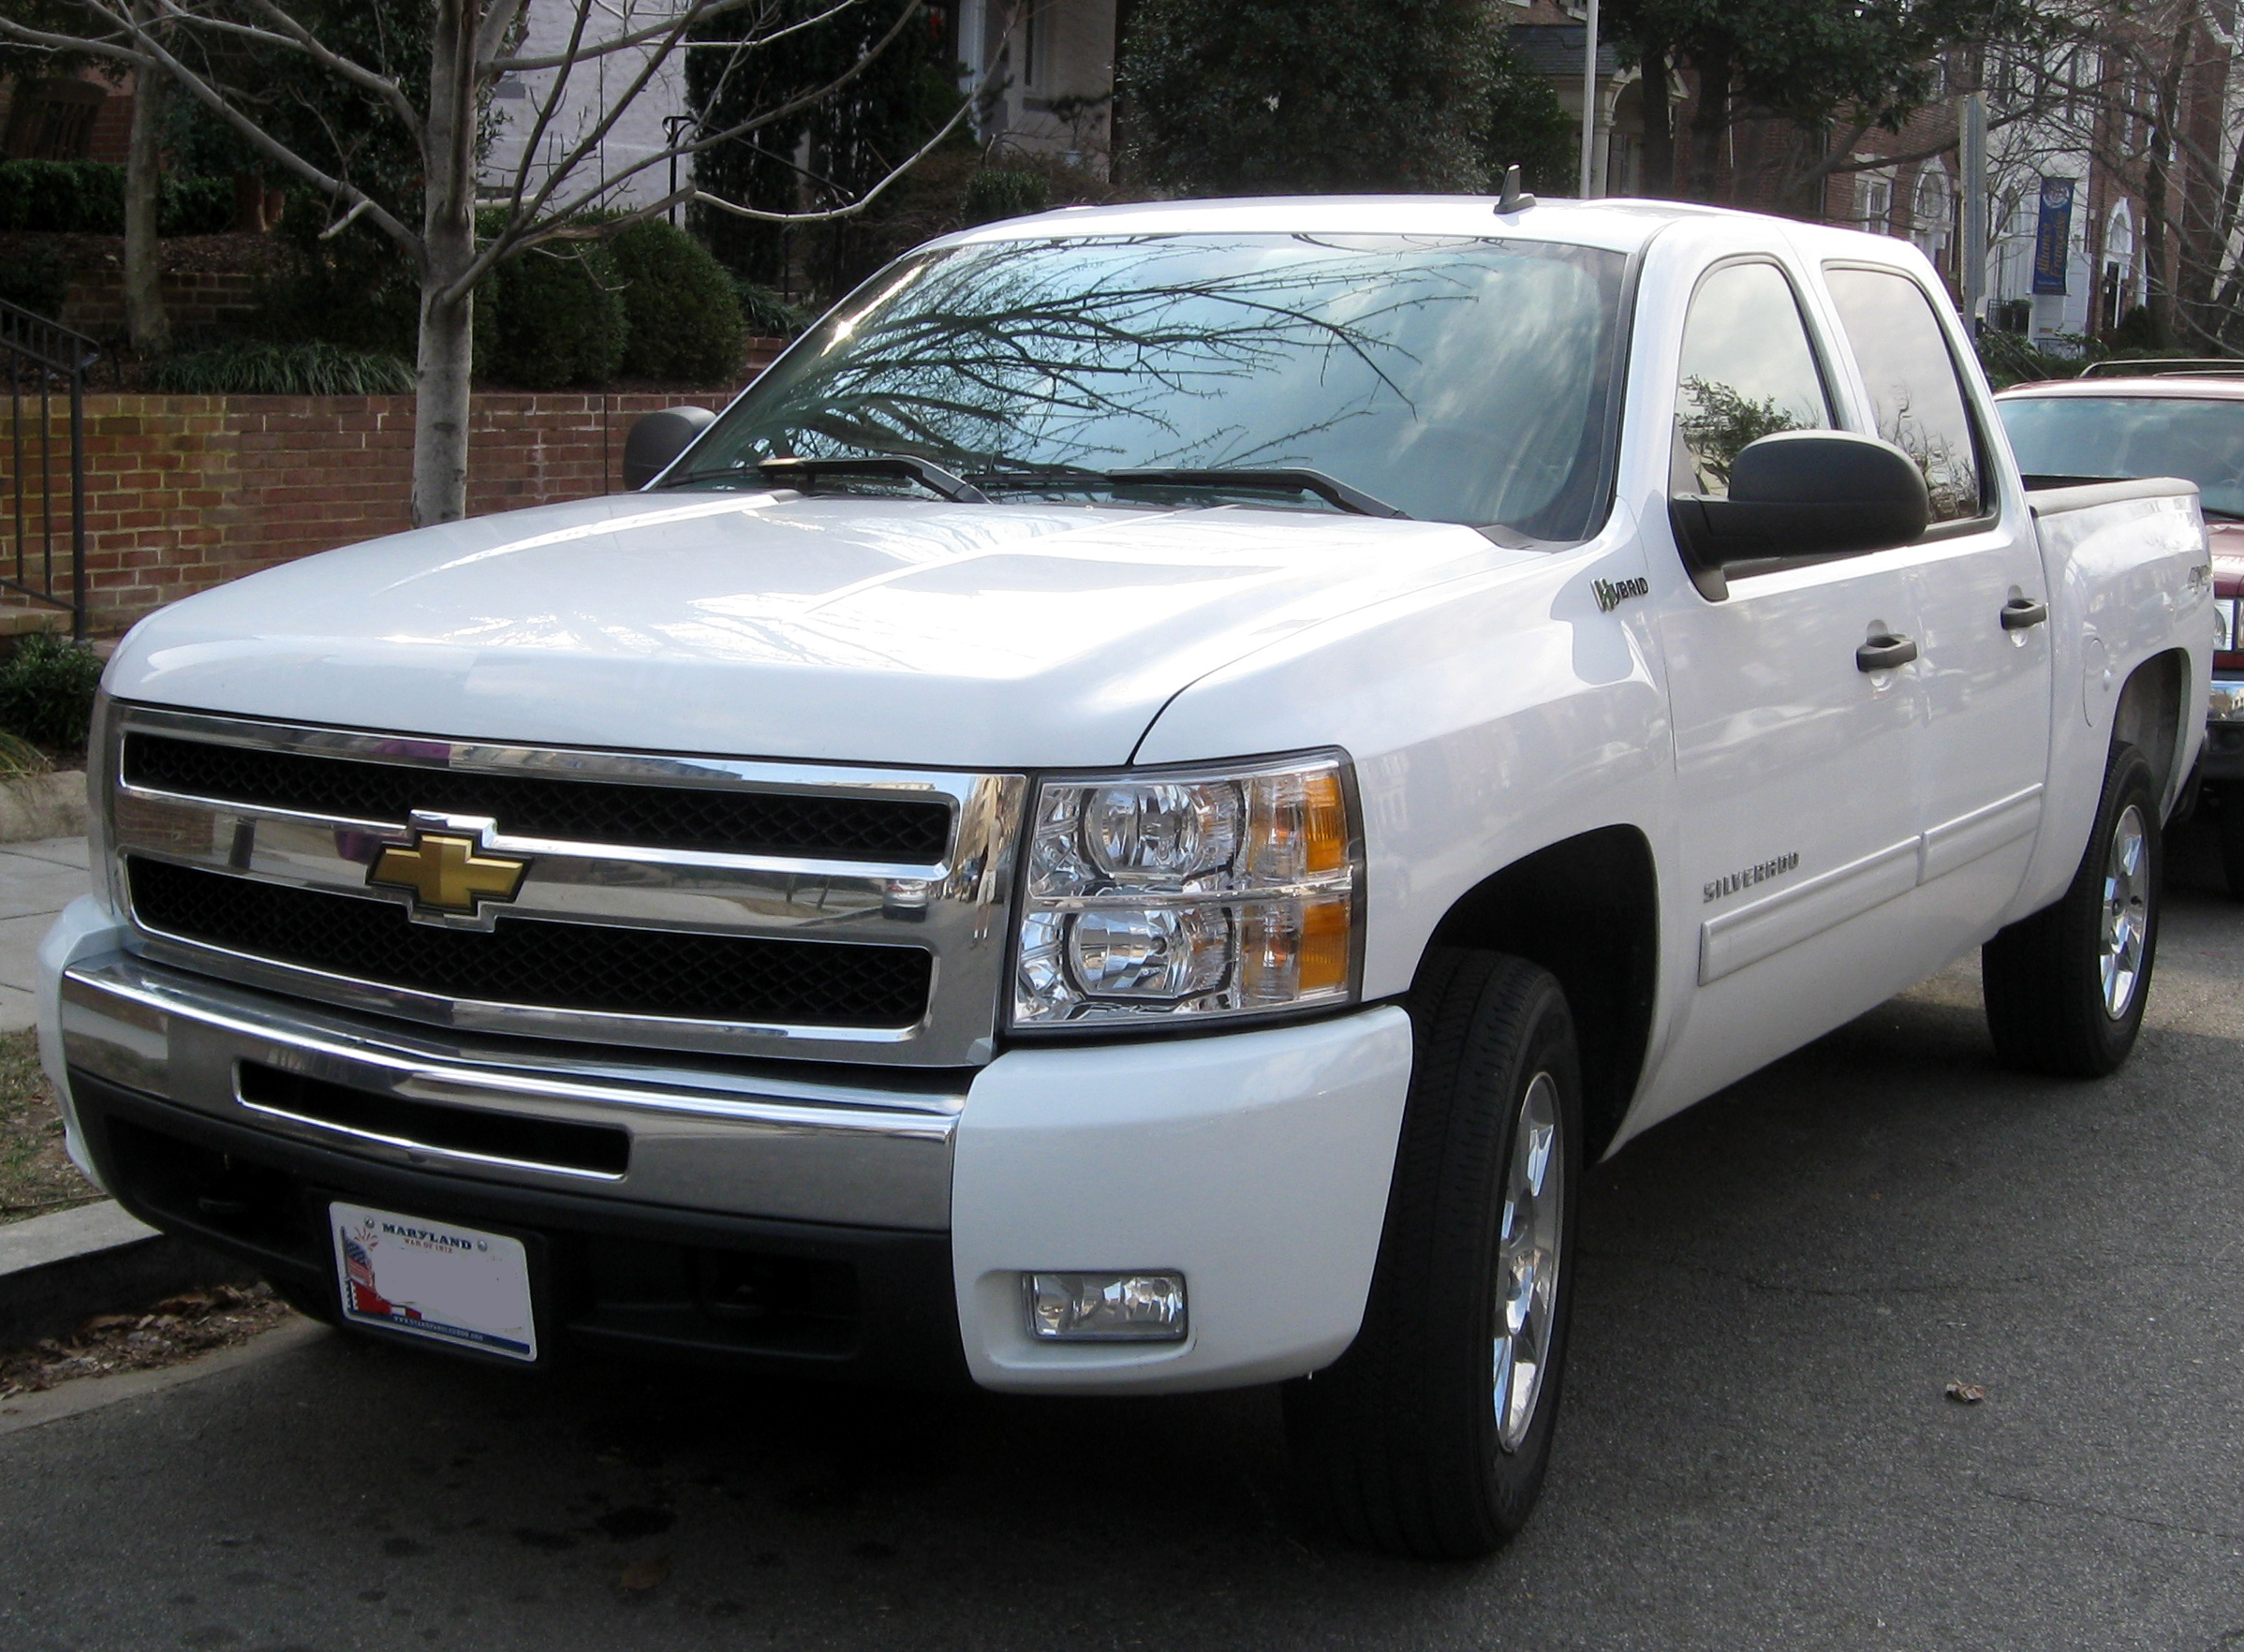 us nov en silverado chevy cost silveradolt media of content chevrolet detail lowest news total has pages ownership